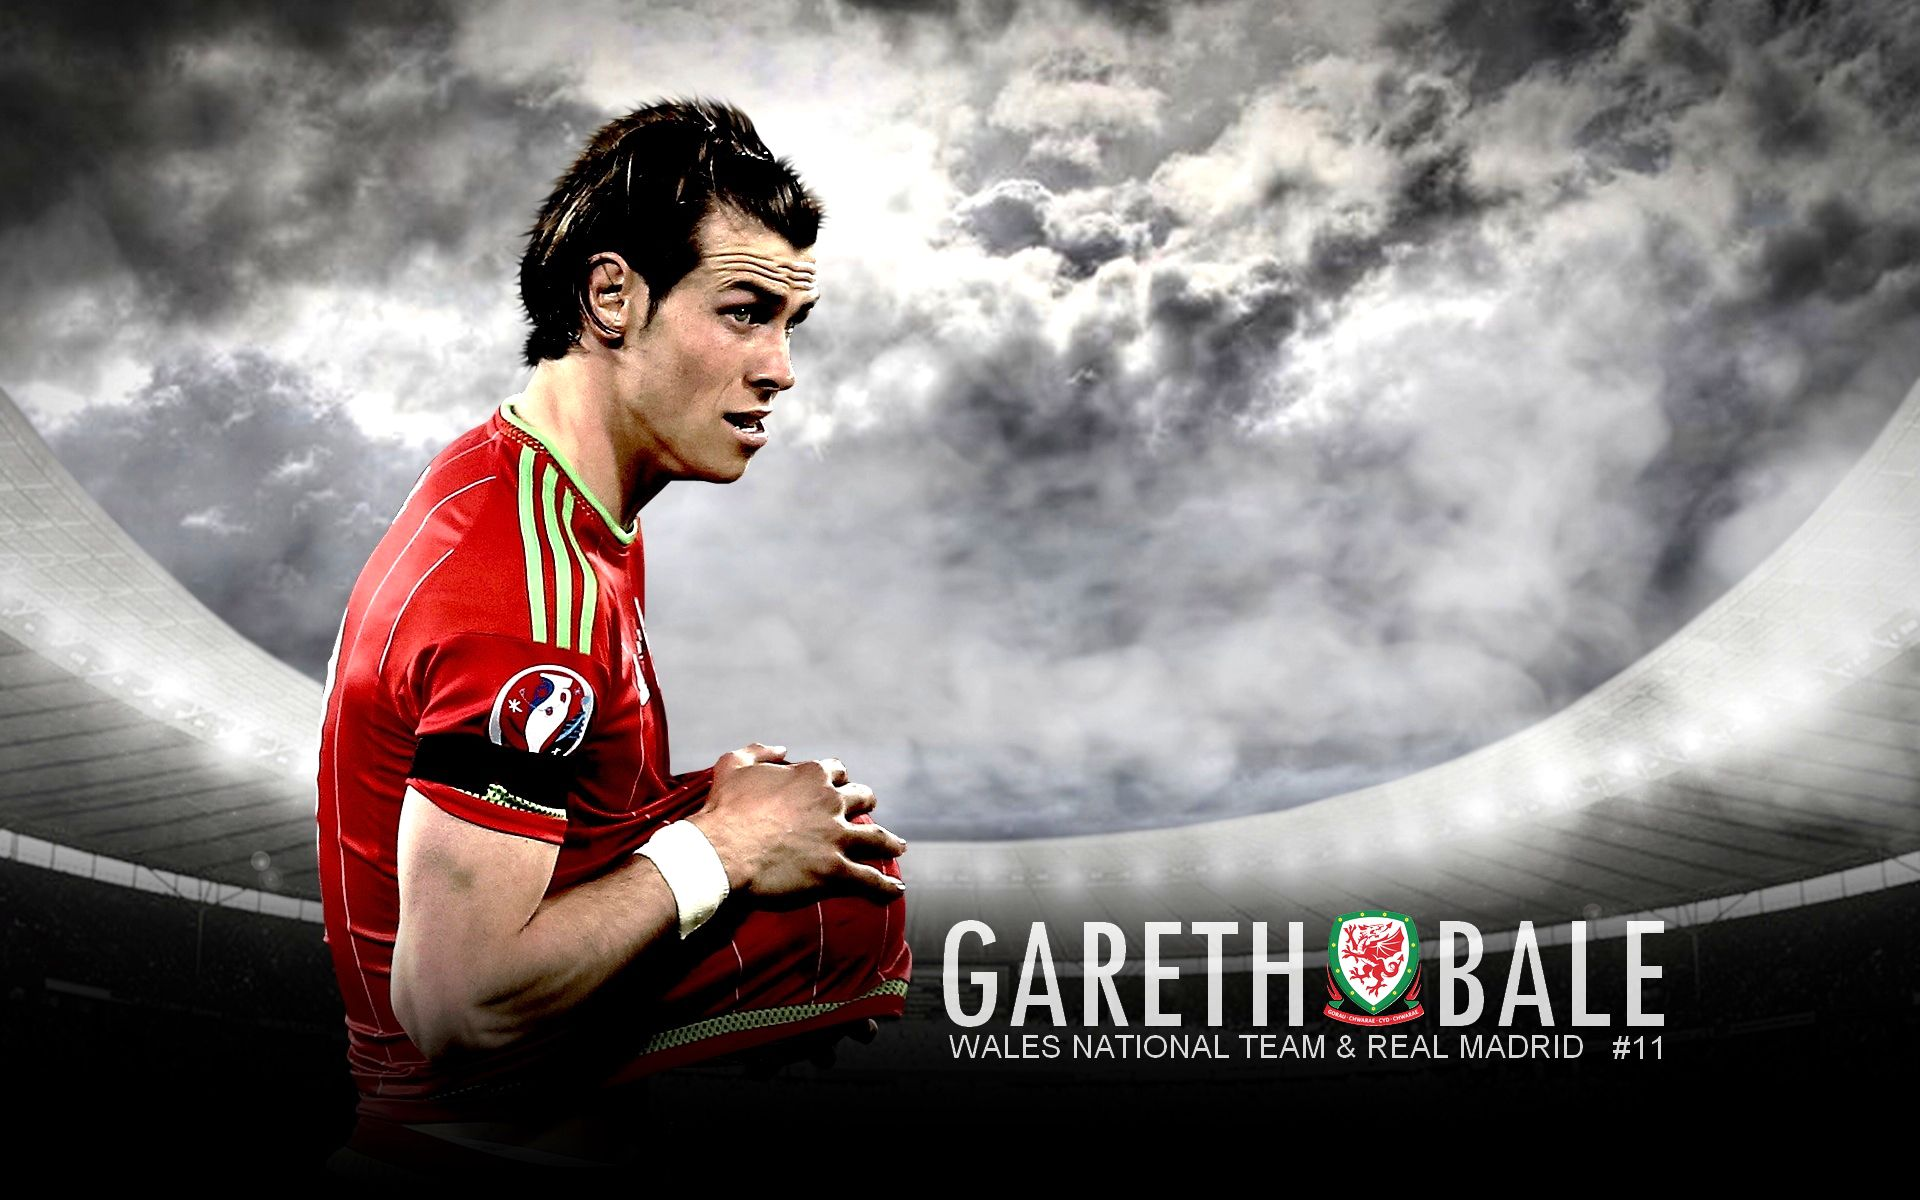 Gareth Bale Wallpapers Pictures Images 1920x1200